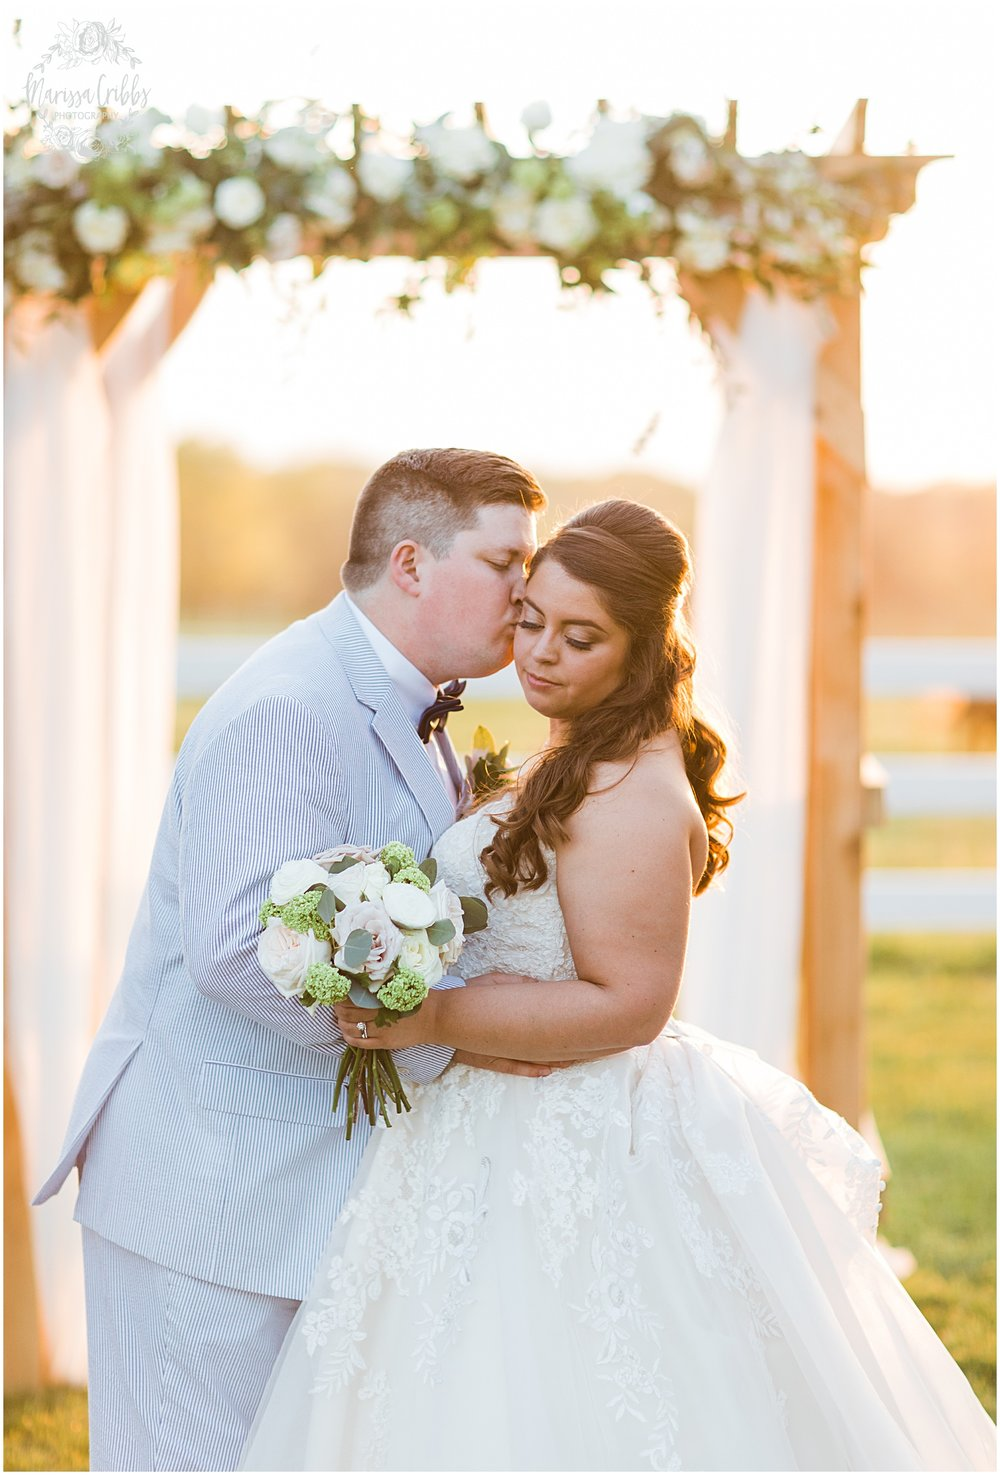 ANDREA & MICHAEL WEDDING | HICKORY CREEK RANCH | MARISSA CRIBBS PHOTOGRAPHY_4912.jpg